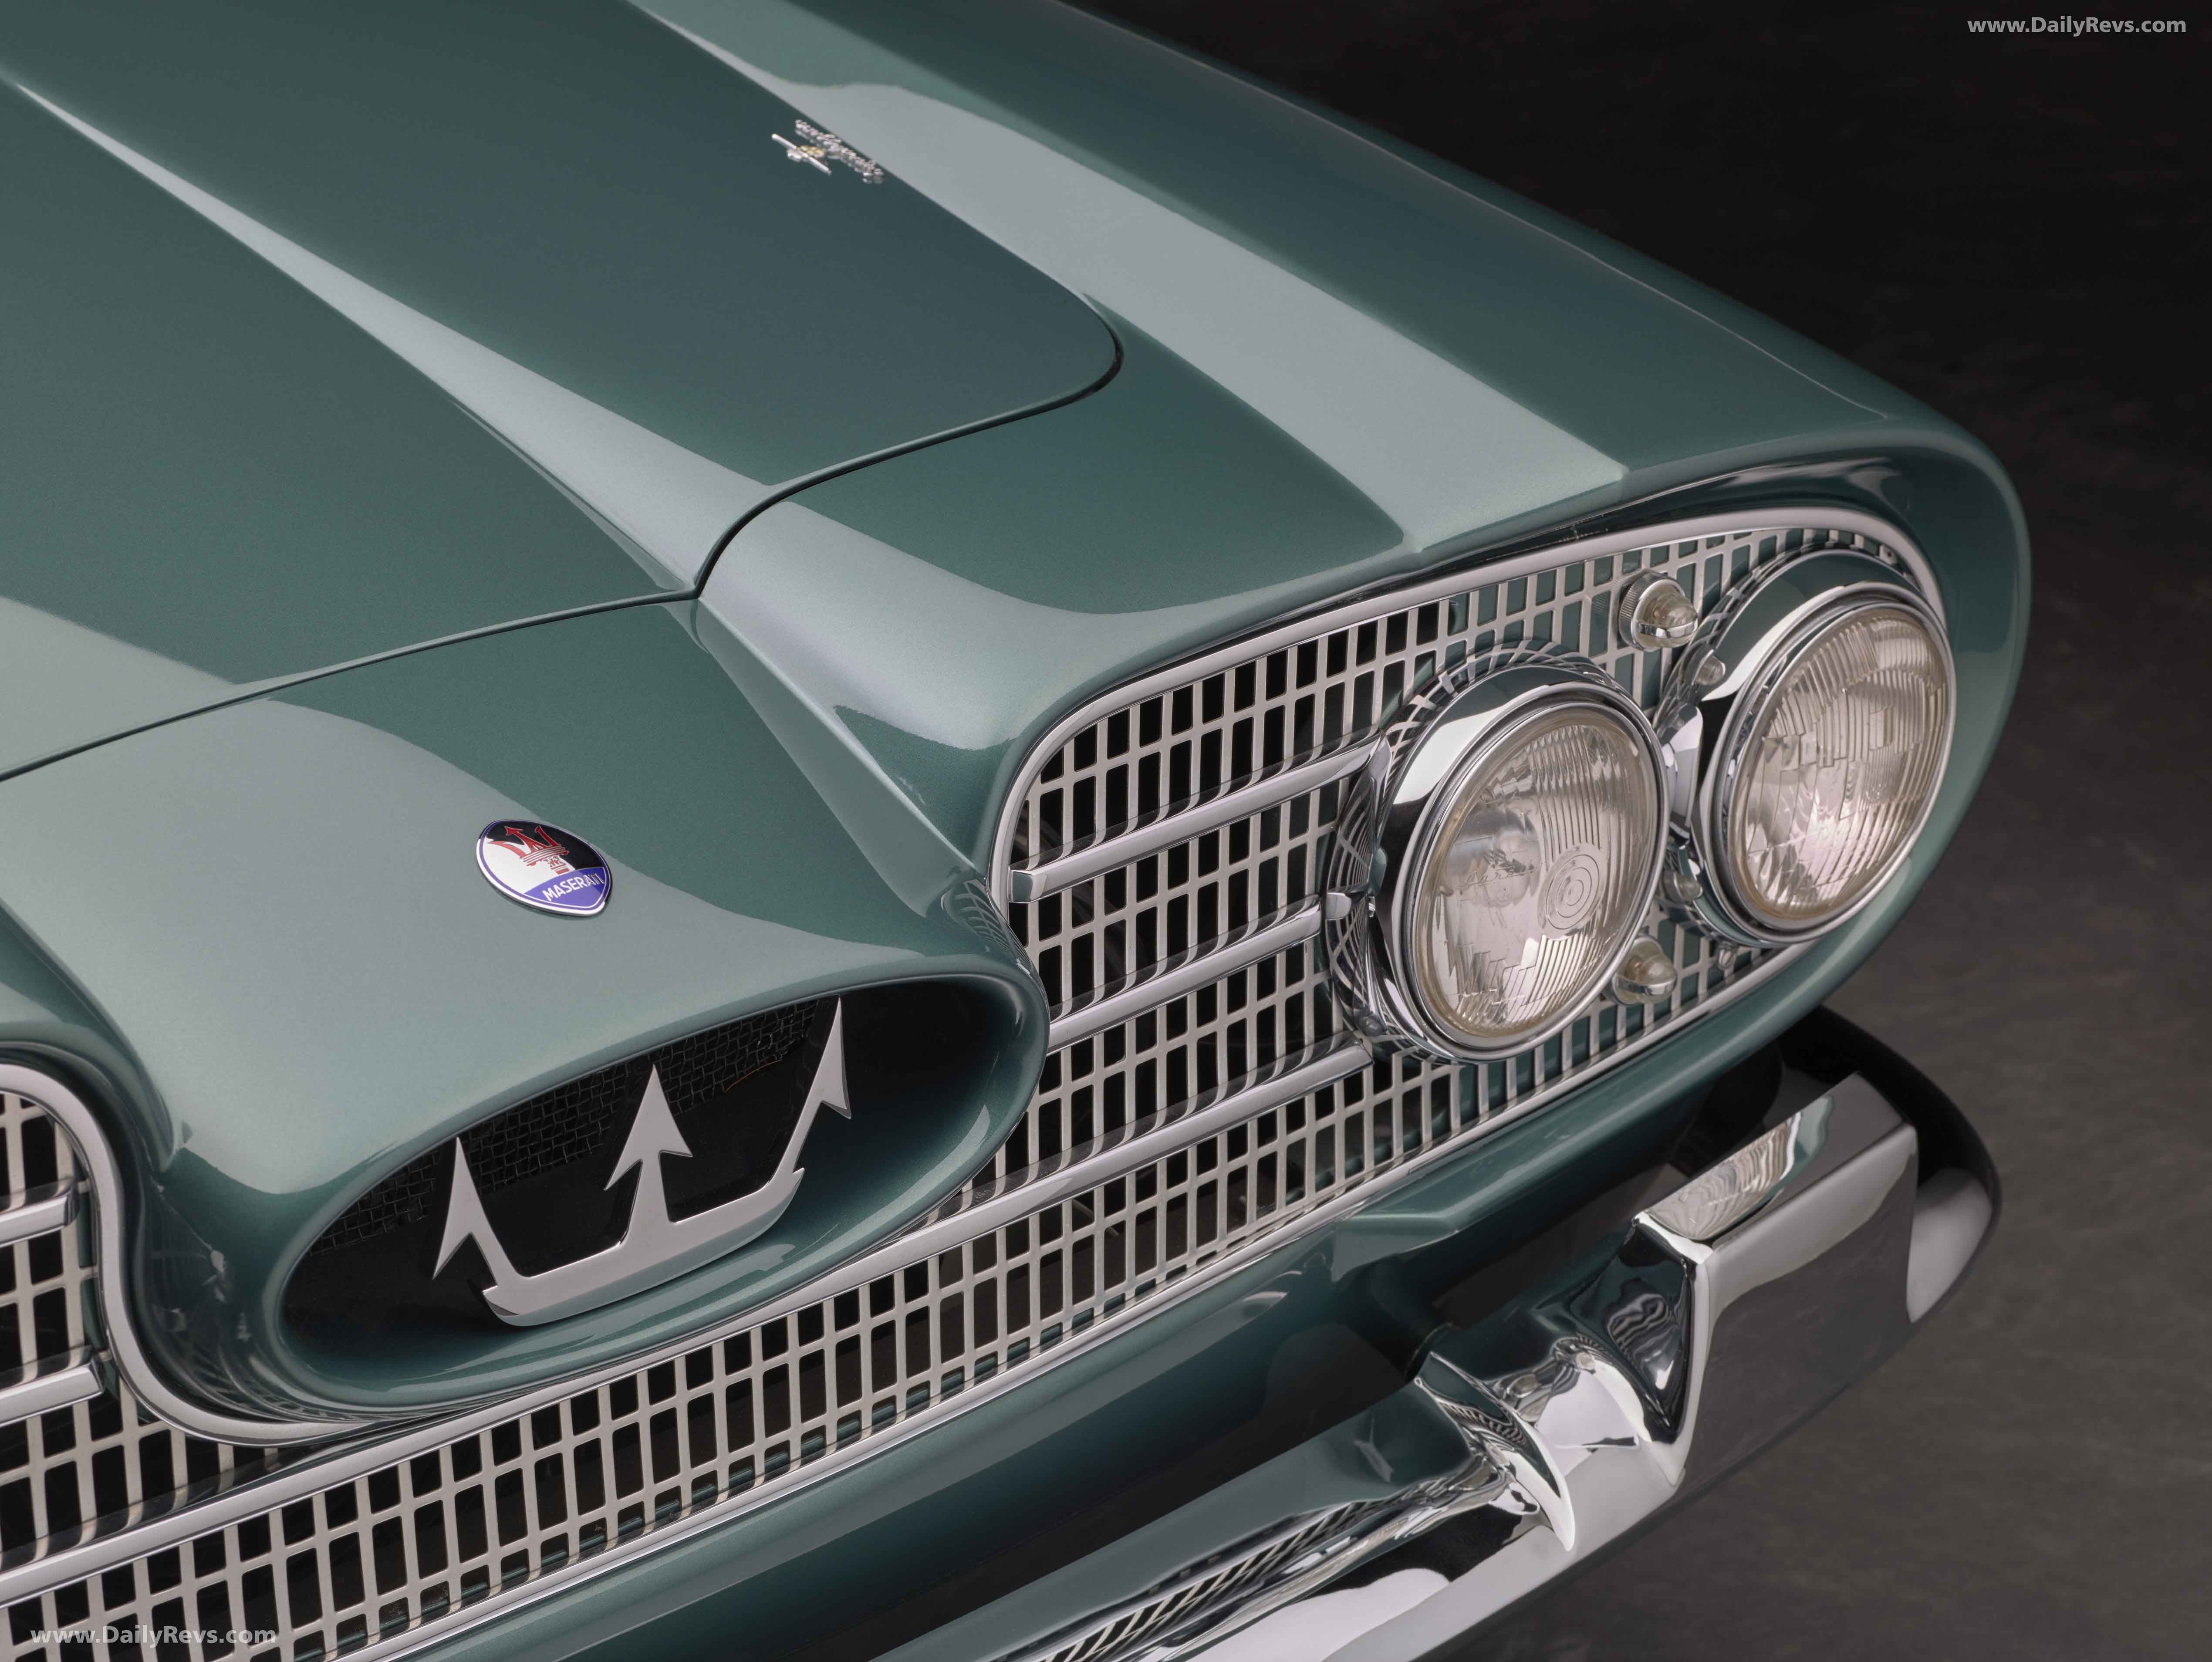 1959 Maserati 5000 GT - HD Pictures, Videos, Specs ...